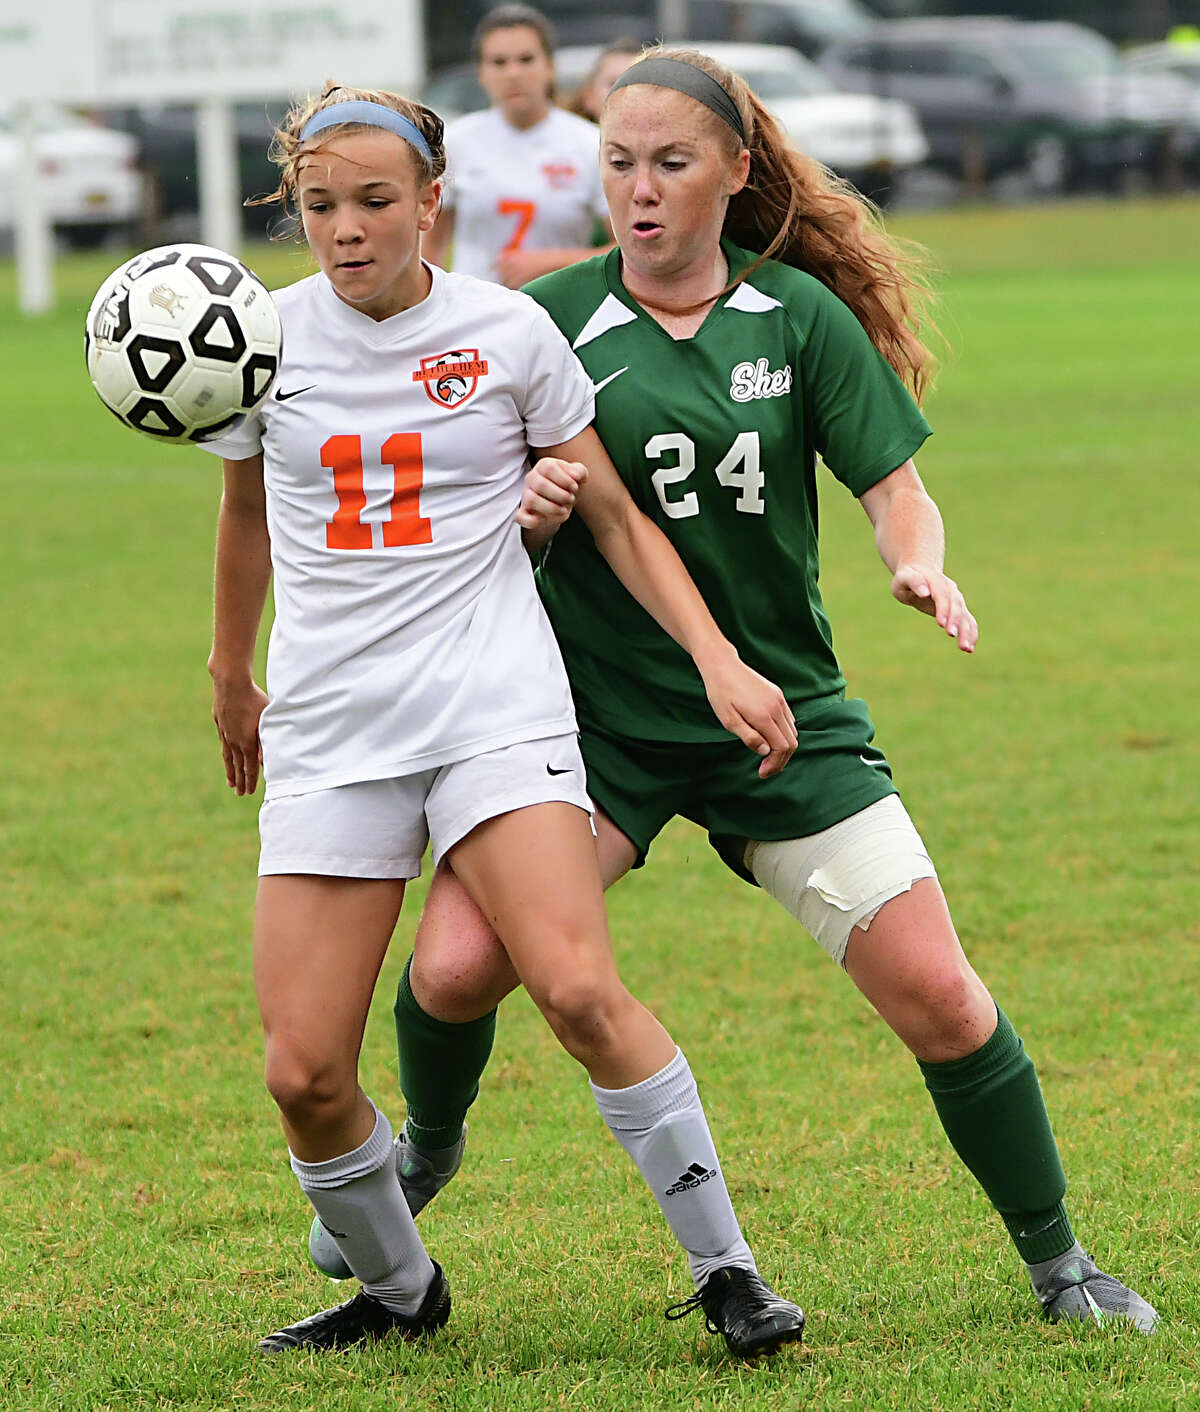 Bethlehem's Claire Hutton, #11, battles for the ball with Shenendehowa's Danielle Casey during a soccer game on Thursday, Sept. 26, 2019 in Clifton Park, N.Y. (Lori Van Buren/Times Union)